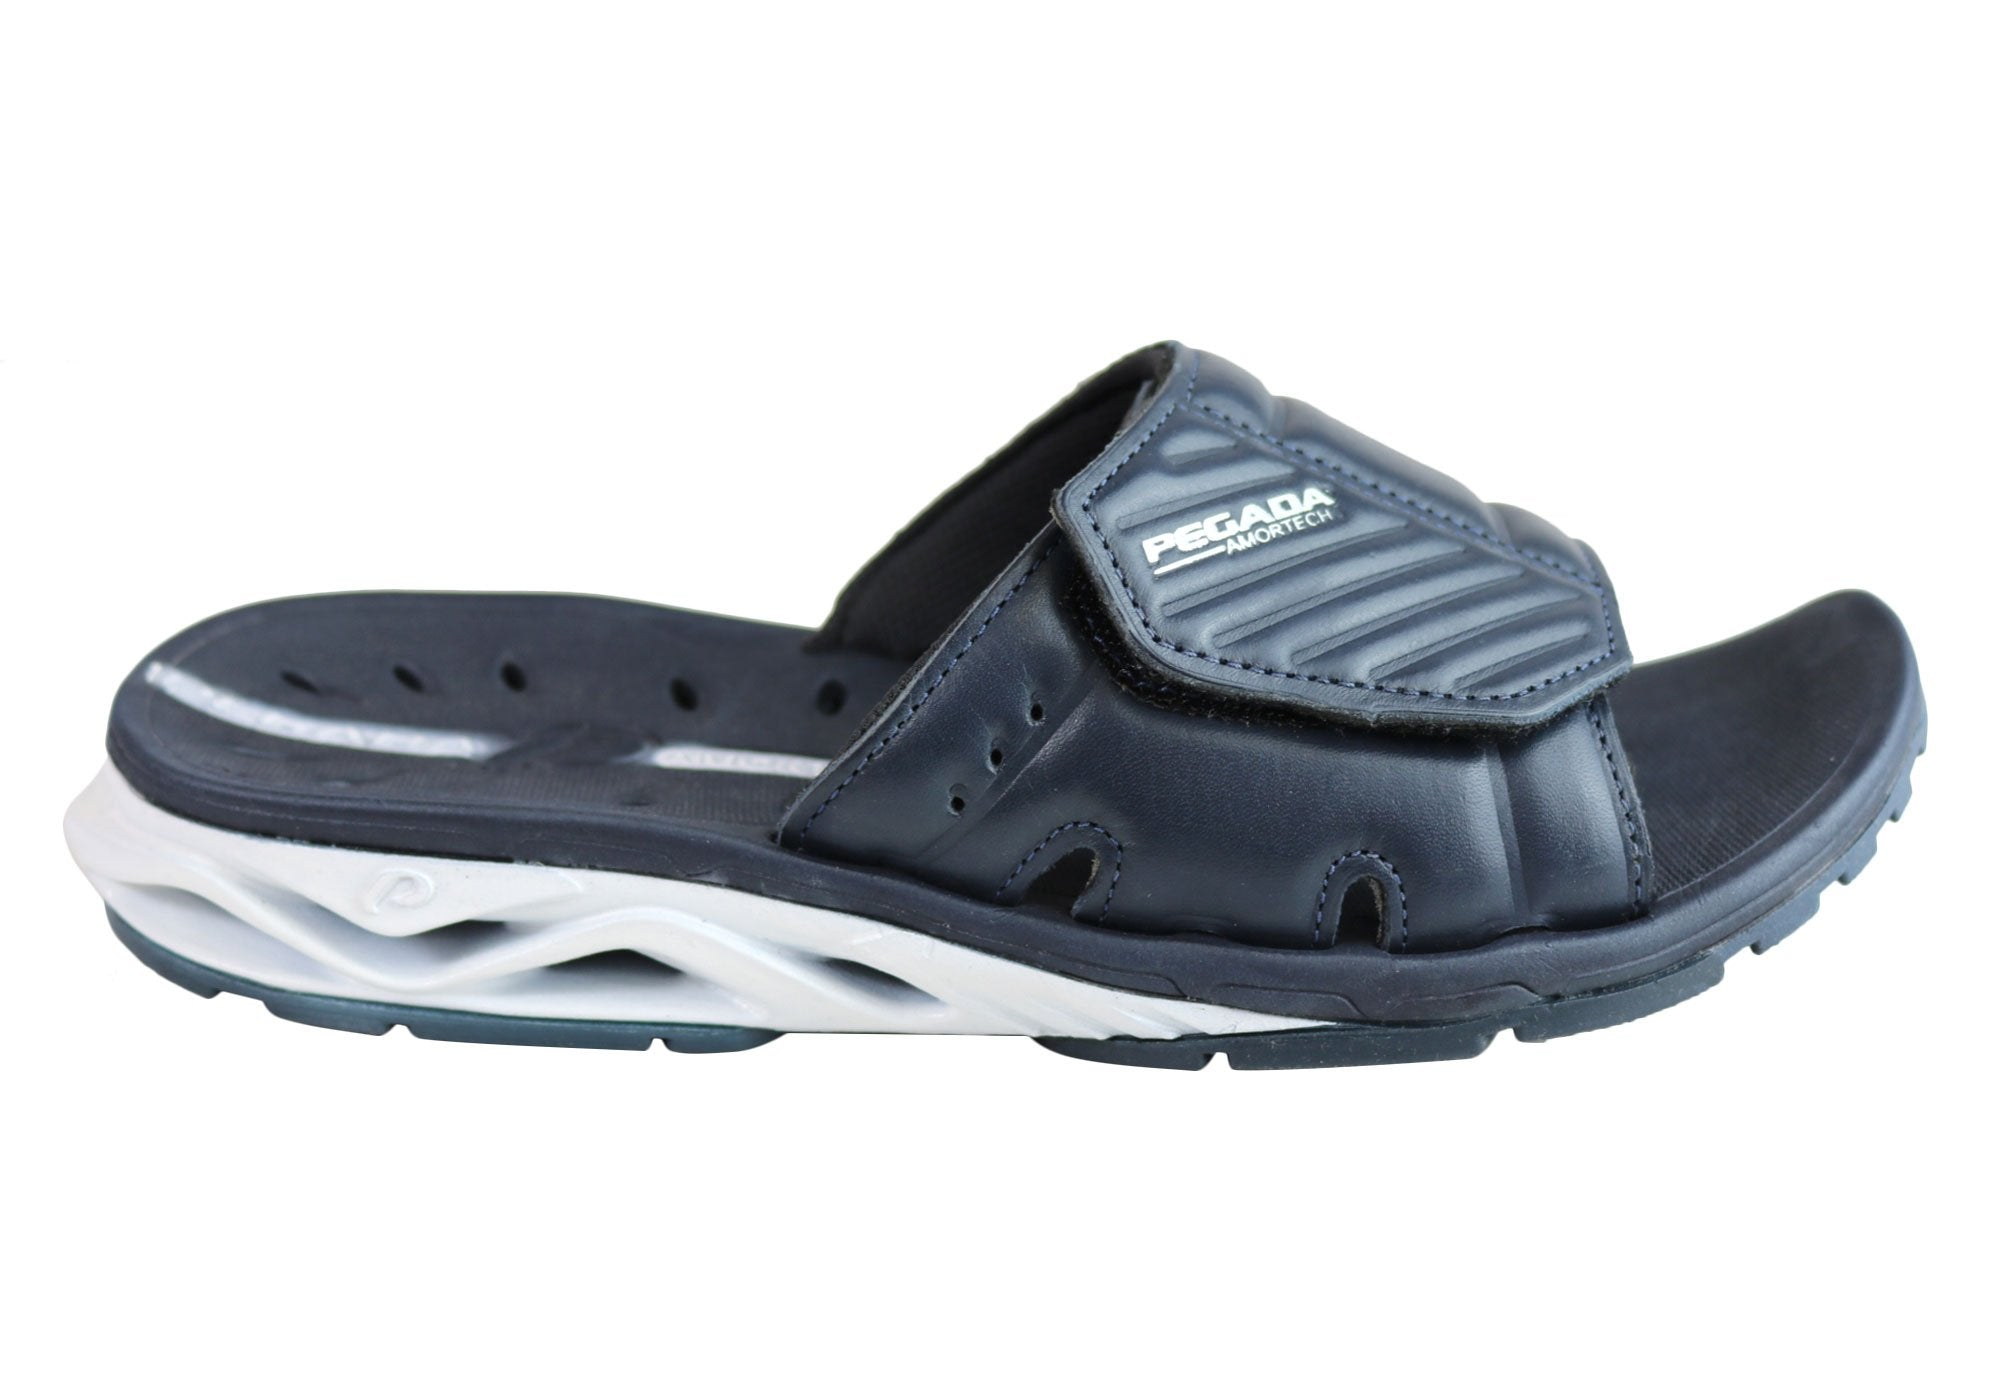 c32598acec6 Pegada Ray Mens Comfort Cushioned Sports Slides Sandals Made In Brazil